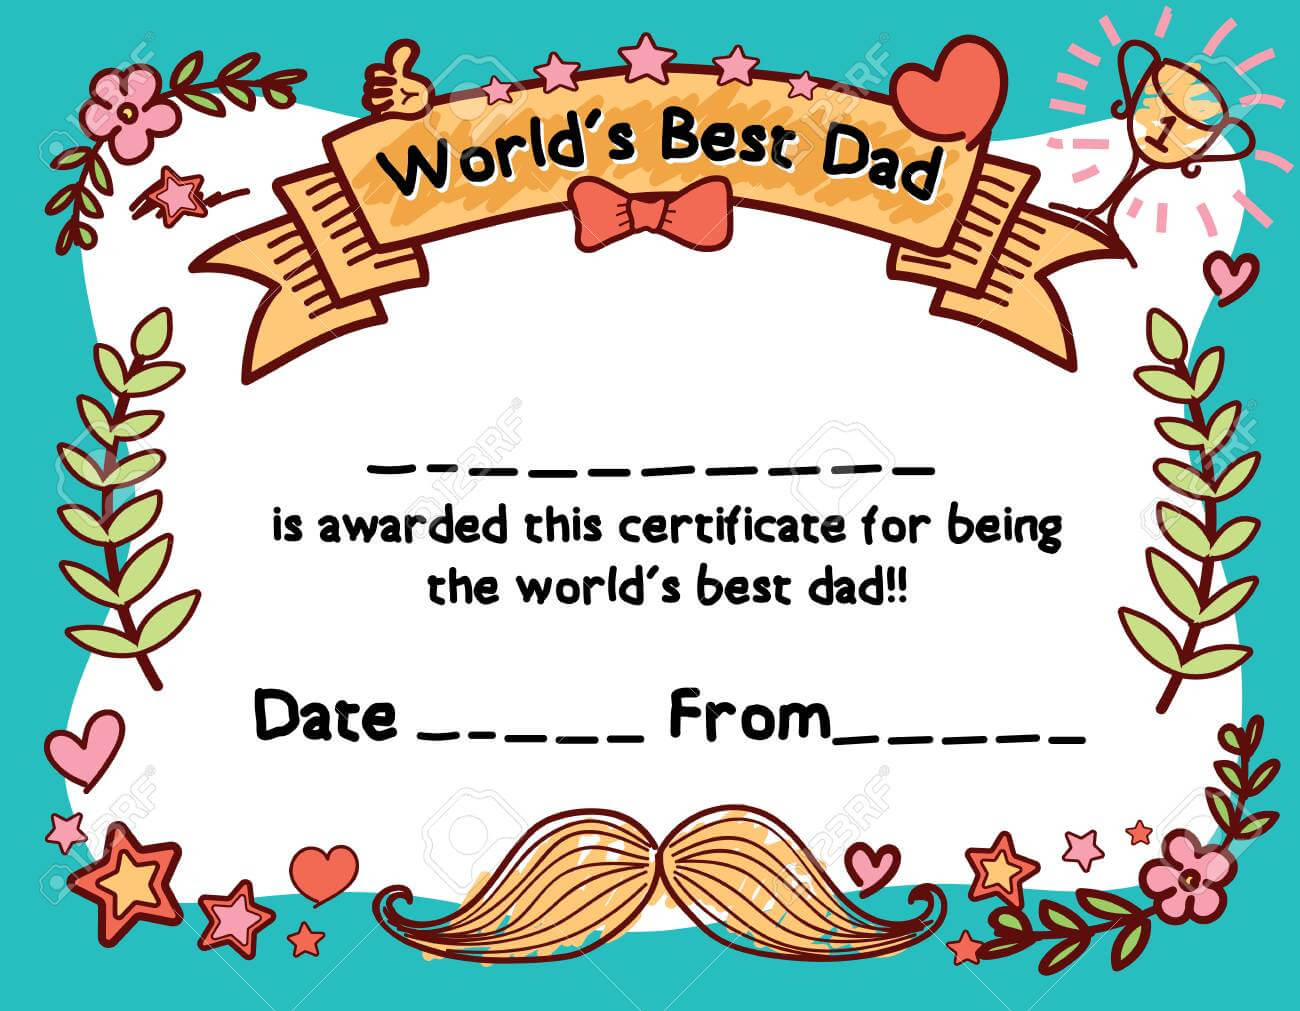 World's Best Dad Award Certificate Template For Father's Day inside Player Of The Day Certificate Template